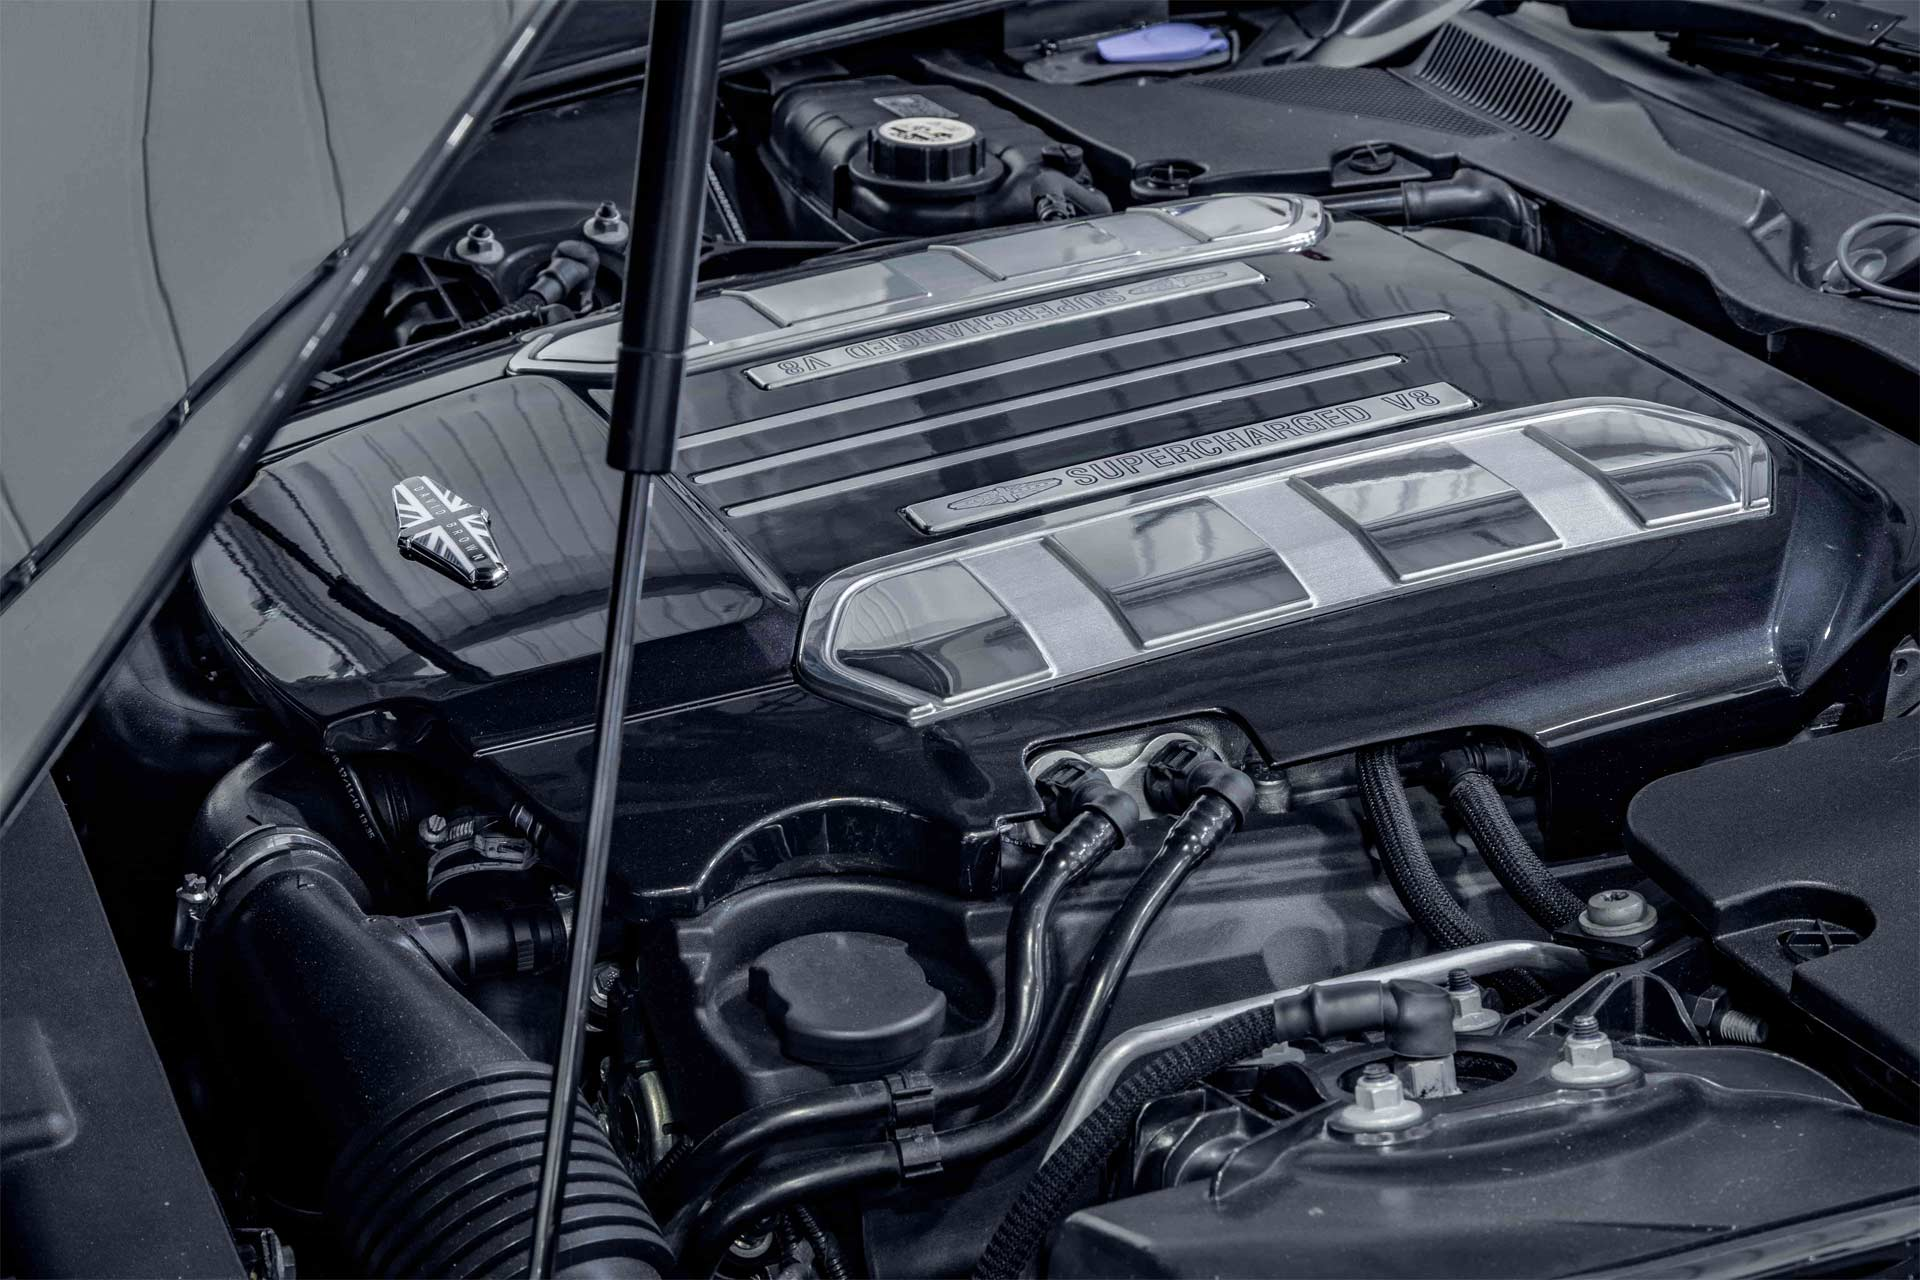 David-Brown-Speedback-Silverstone-Edition-Supercharged-V8-engine